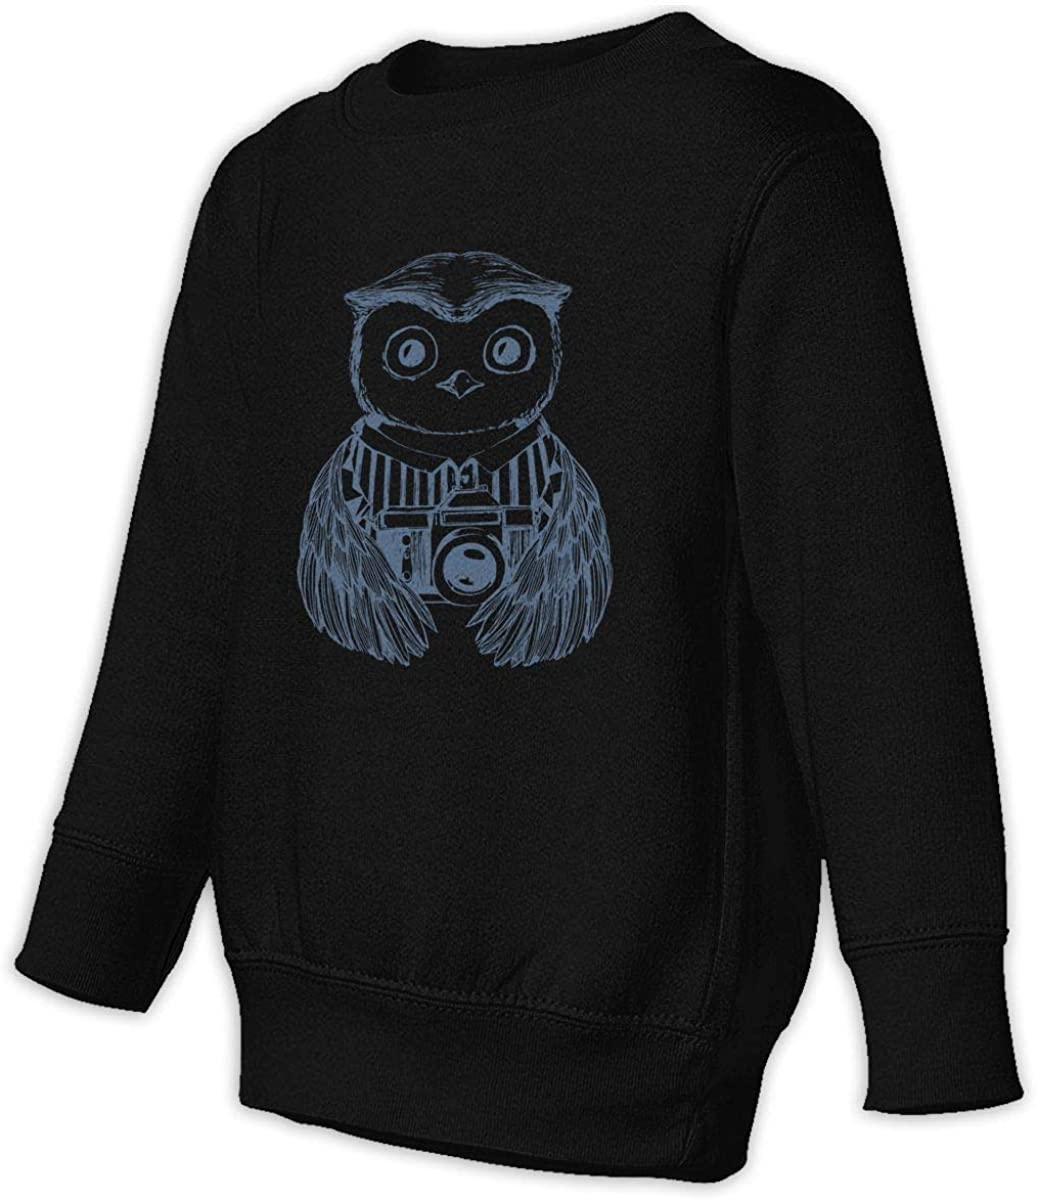 wudici Photographer Boys Girls Pullover Sweaters Crewneck Sweatshirts Clothes for 2-6 Years Old Children